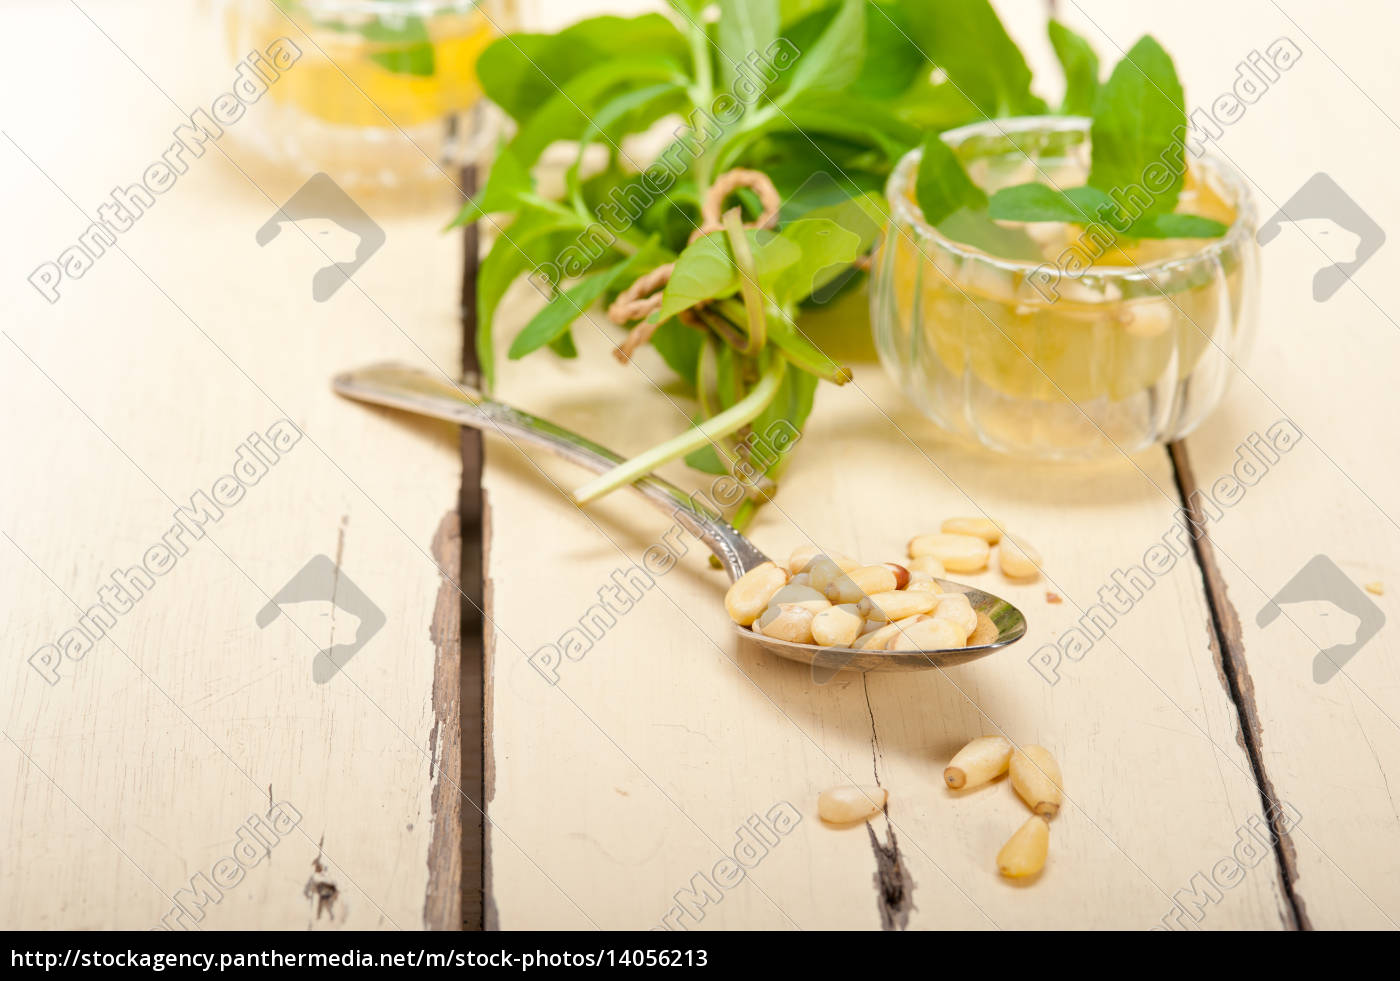 arab, traditional, mint, and, pine, nuts - 14056213